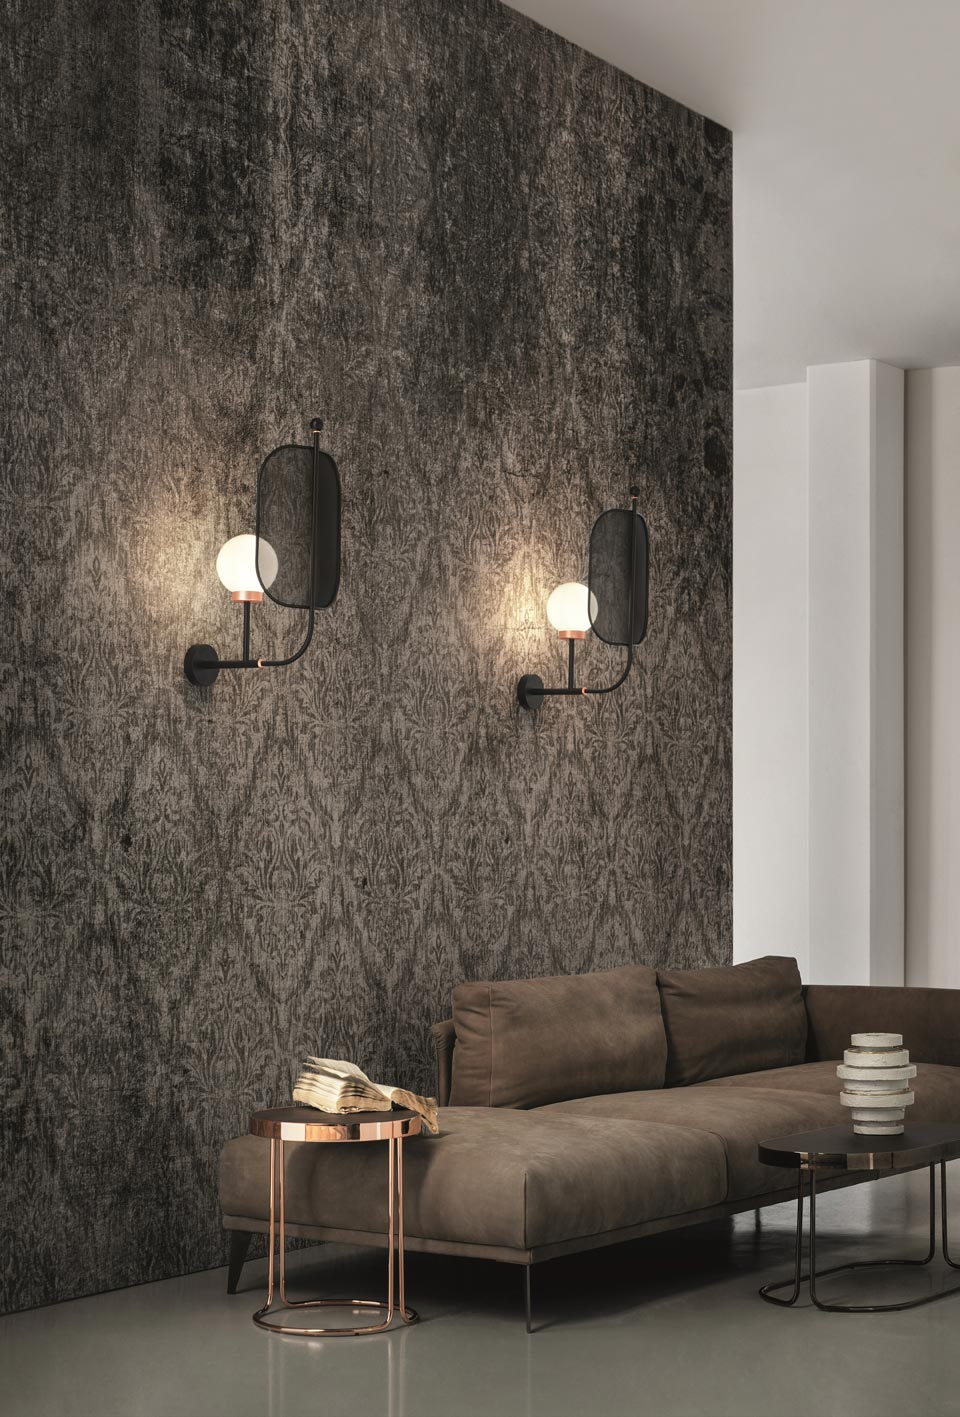 Contemporary Black And Copper Wall Lamp Papilio Masiero Murano And Crystal Chandeliers Lamps And Wall Lights Ref 20010002